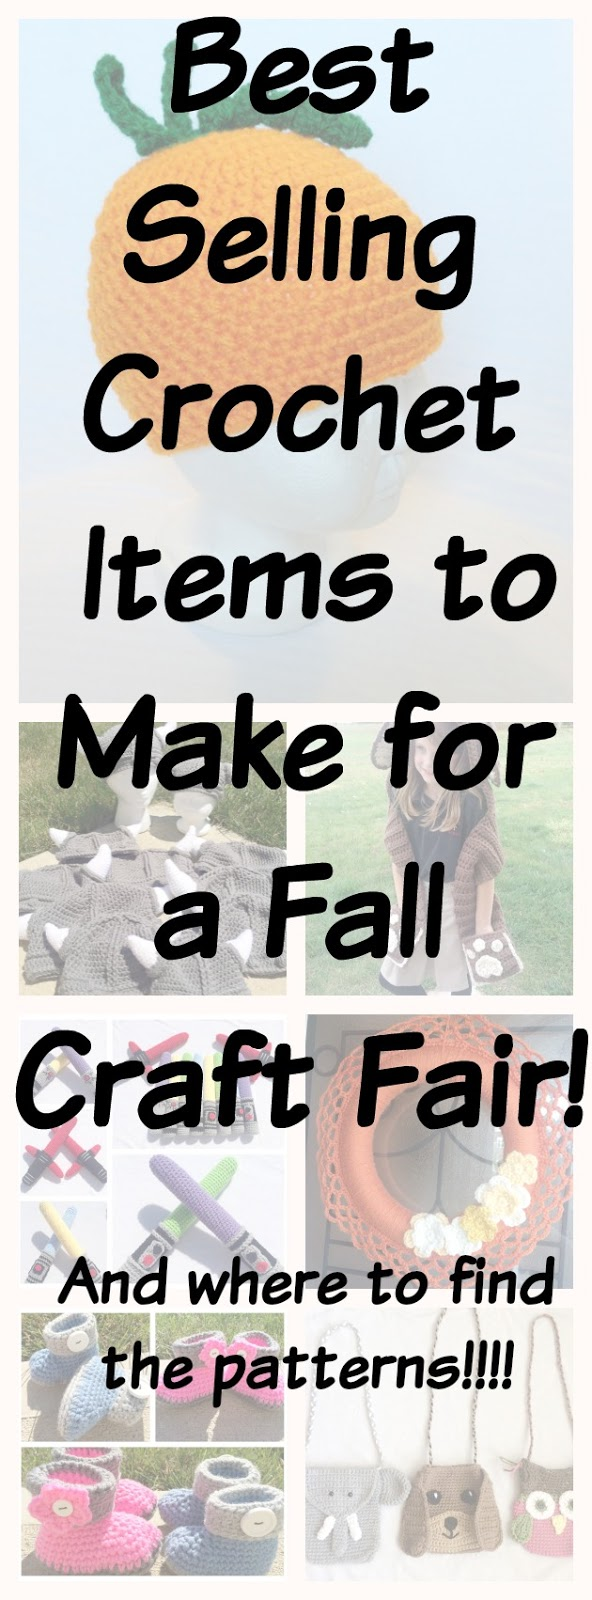 Best Selling Crochet Items For A Fall Craft Fair